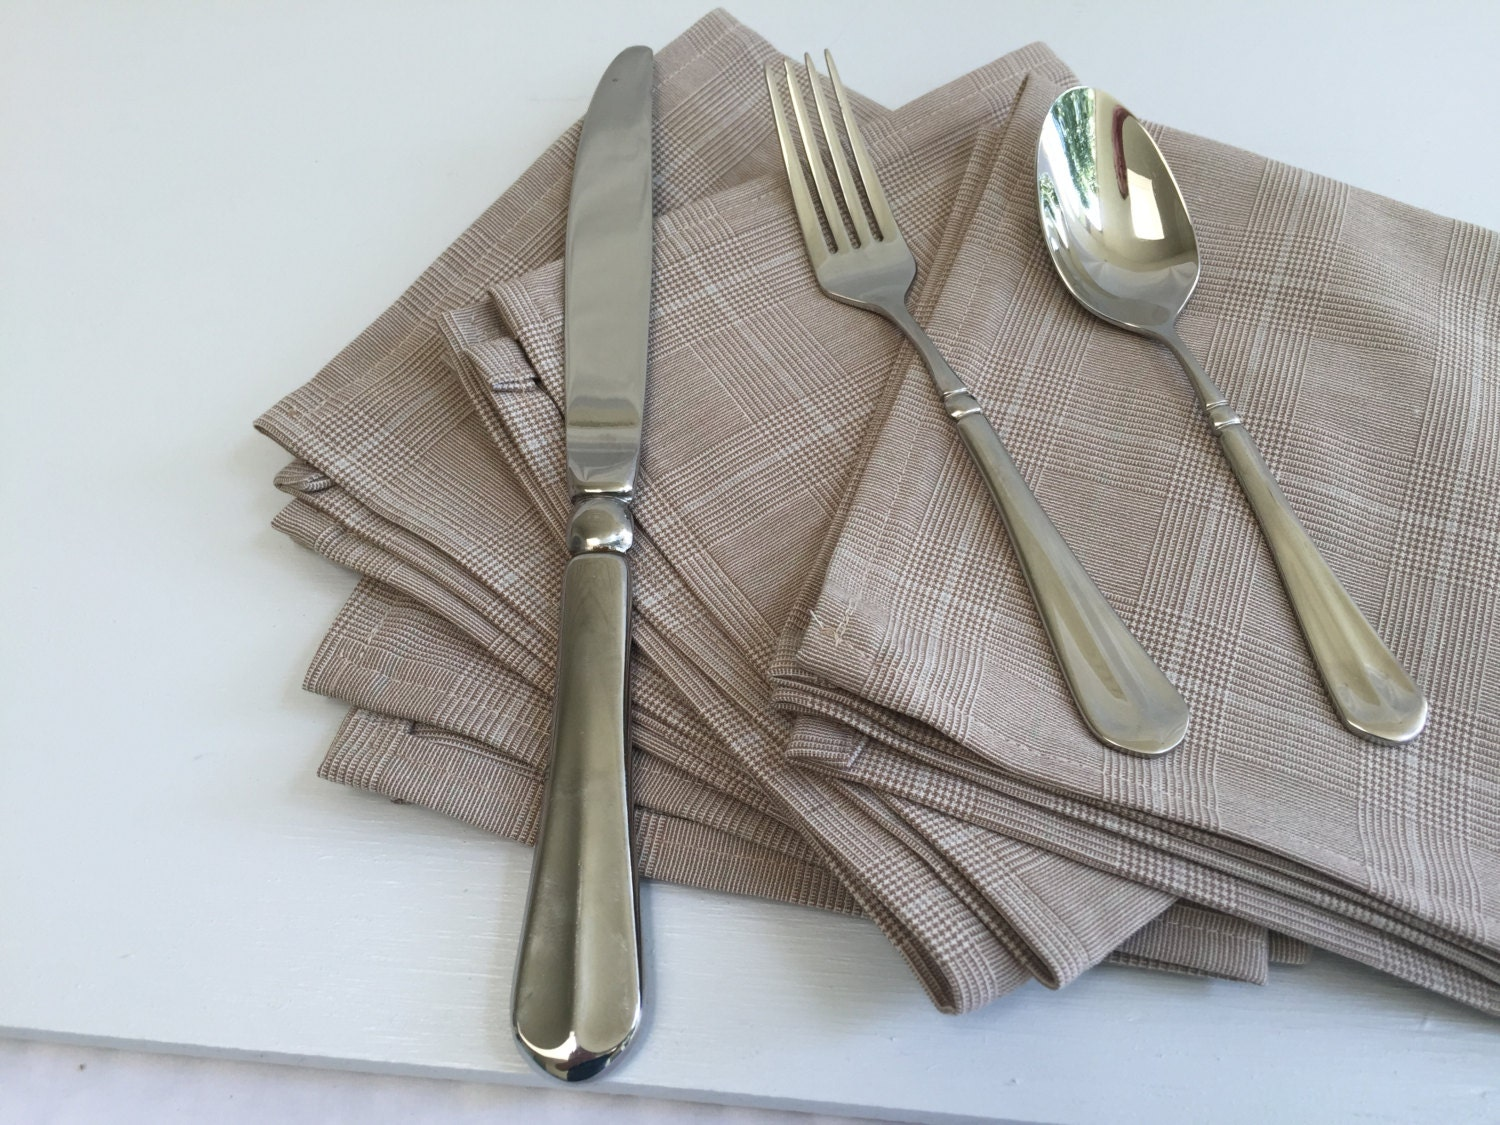 linen napkins cloth napkins table linens striped napkins reusable napkins brown napkins fabric napkins table napkins dinner napkins